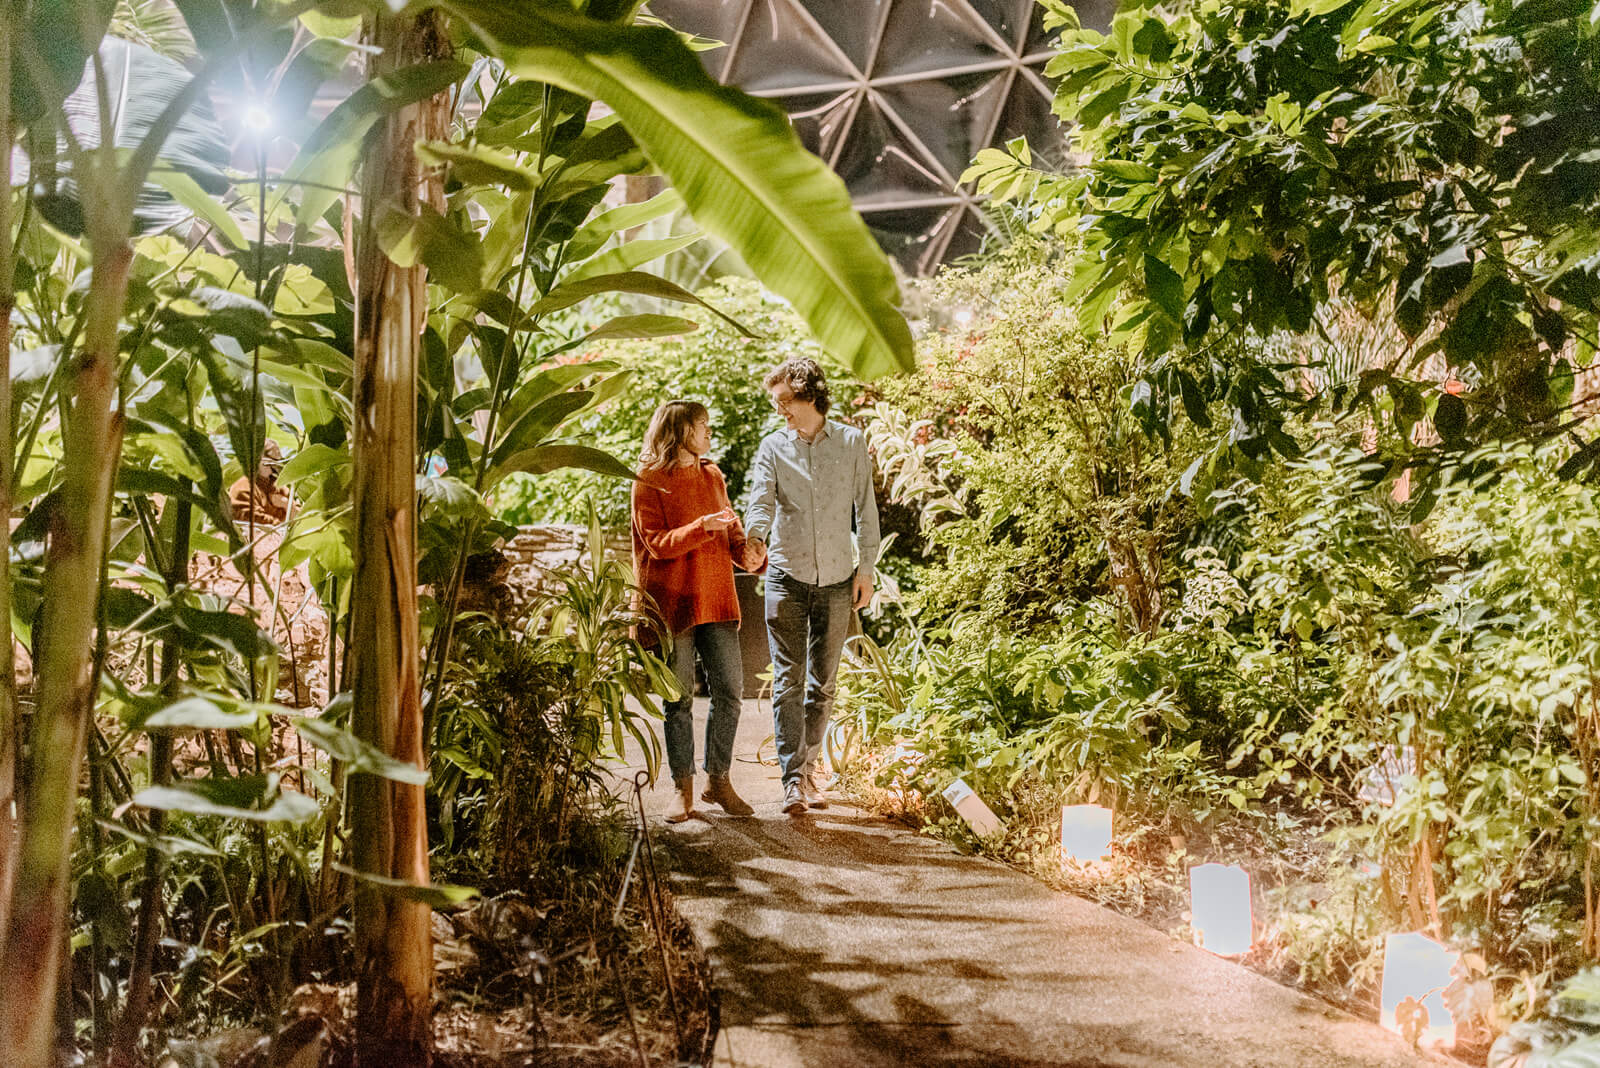 Two people walking in the Greater Des Moines Botanical Garden conservatory surrounded by tropical plants and lights.